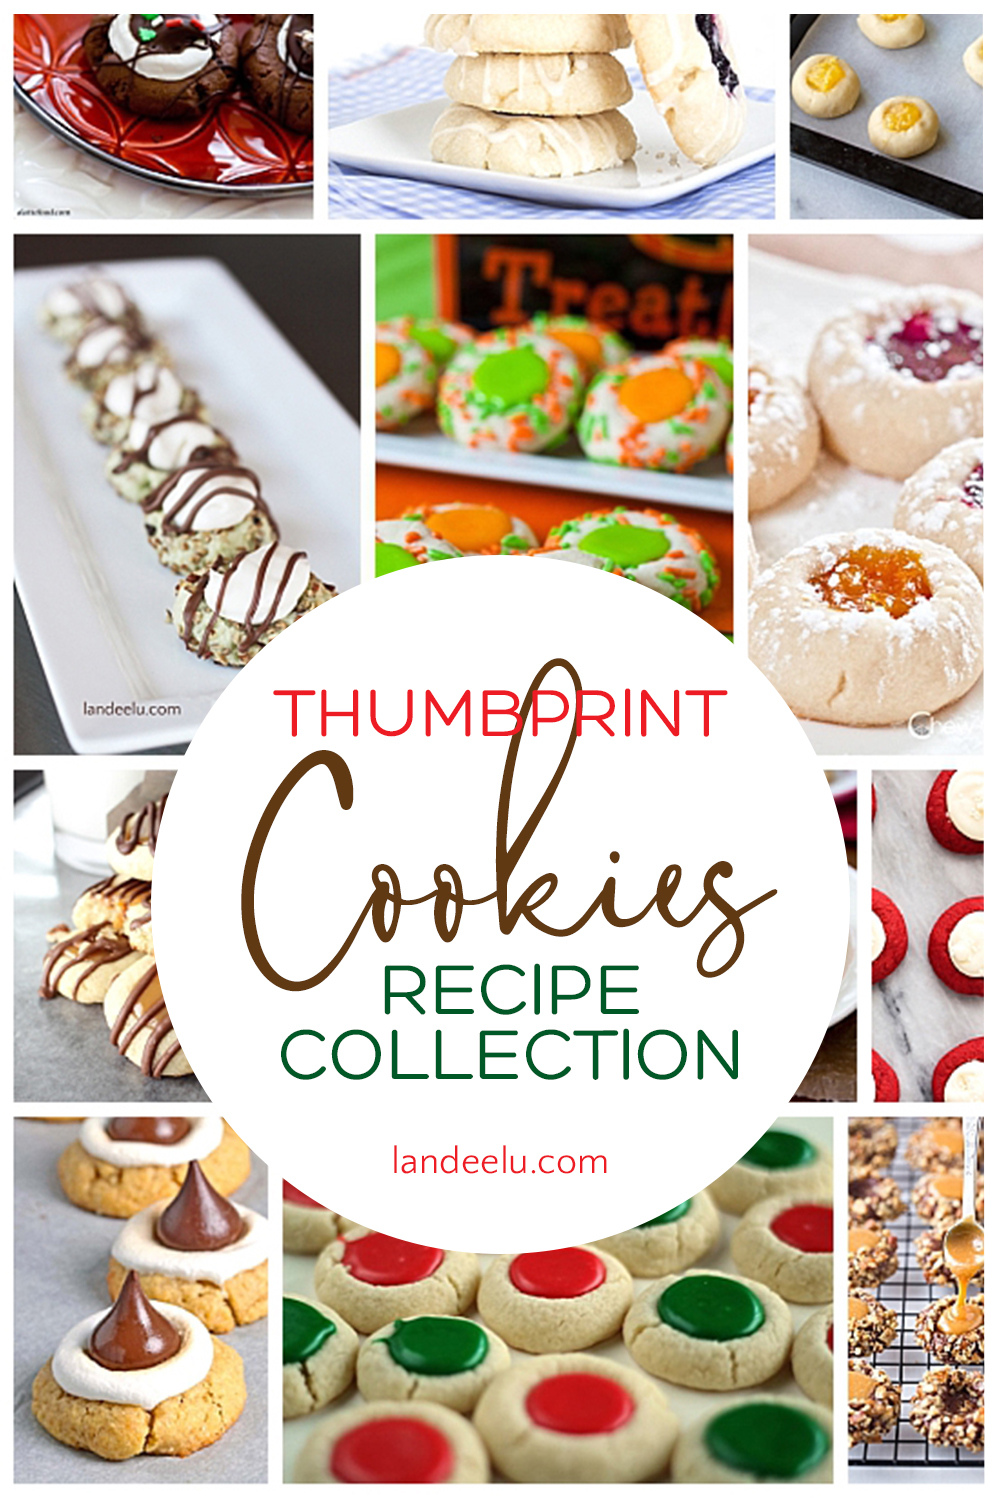 Adorable thumbprint cookies are perfect for any occasion! #cookies #cookierecipes #thumbprintcookies #holidaycookies